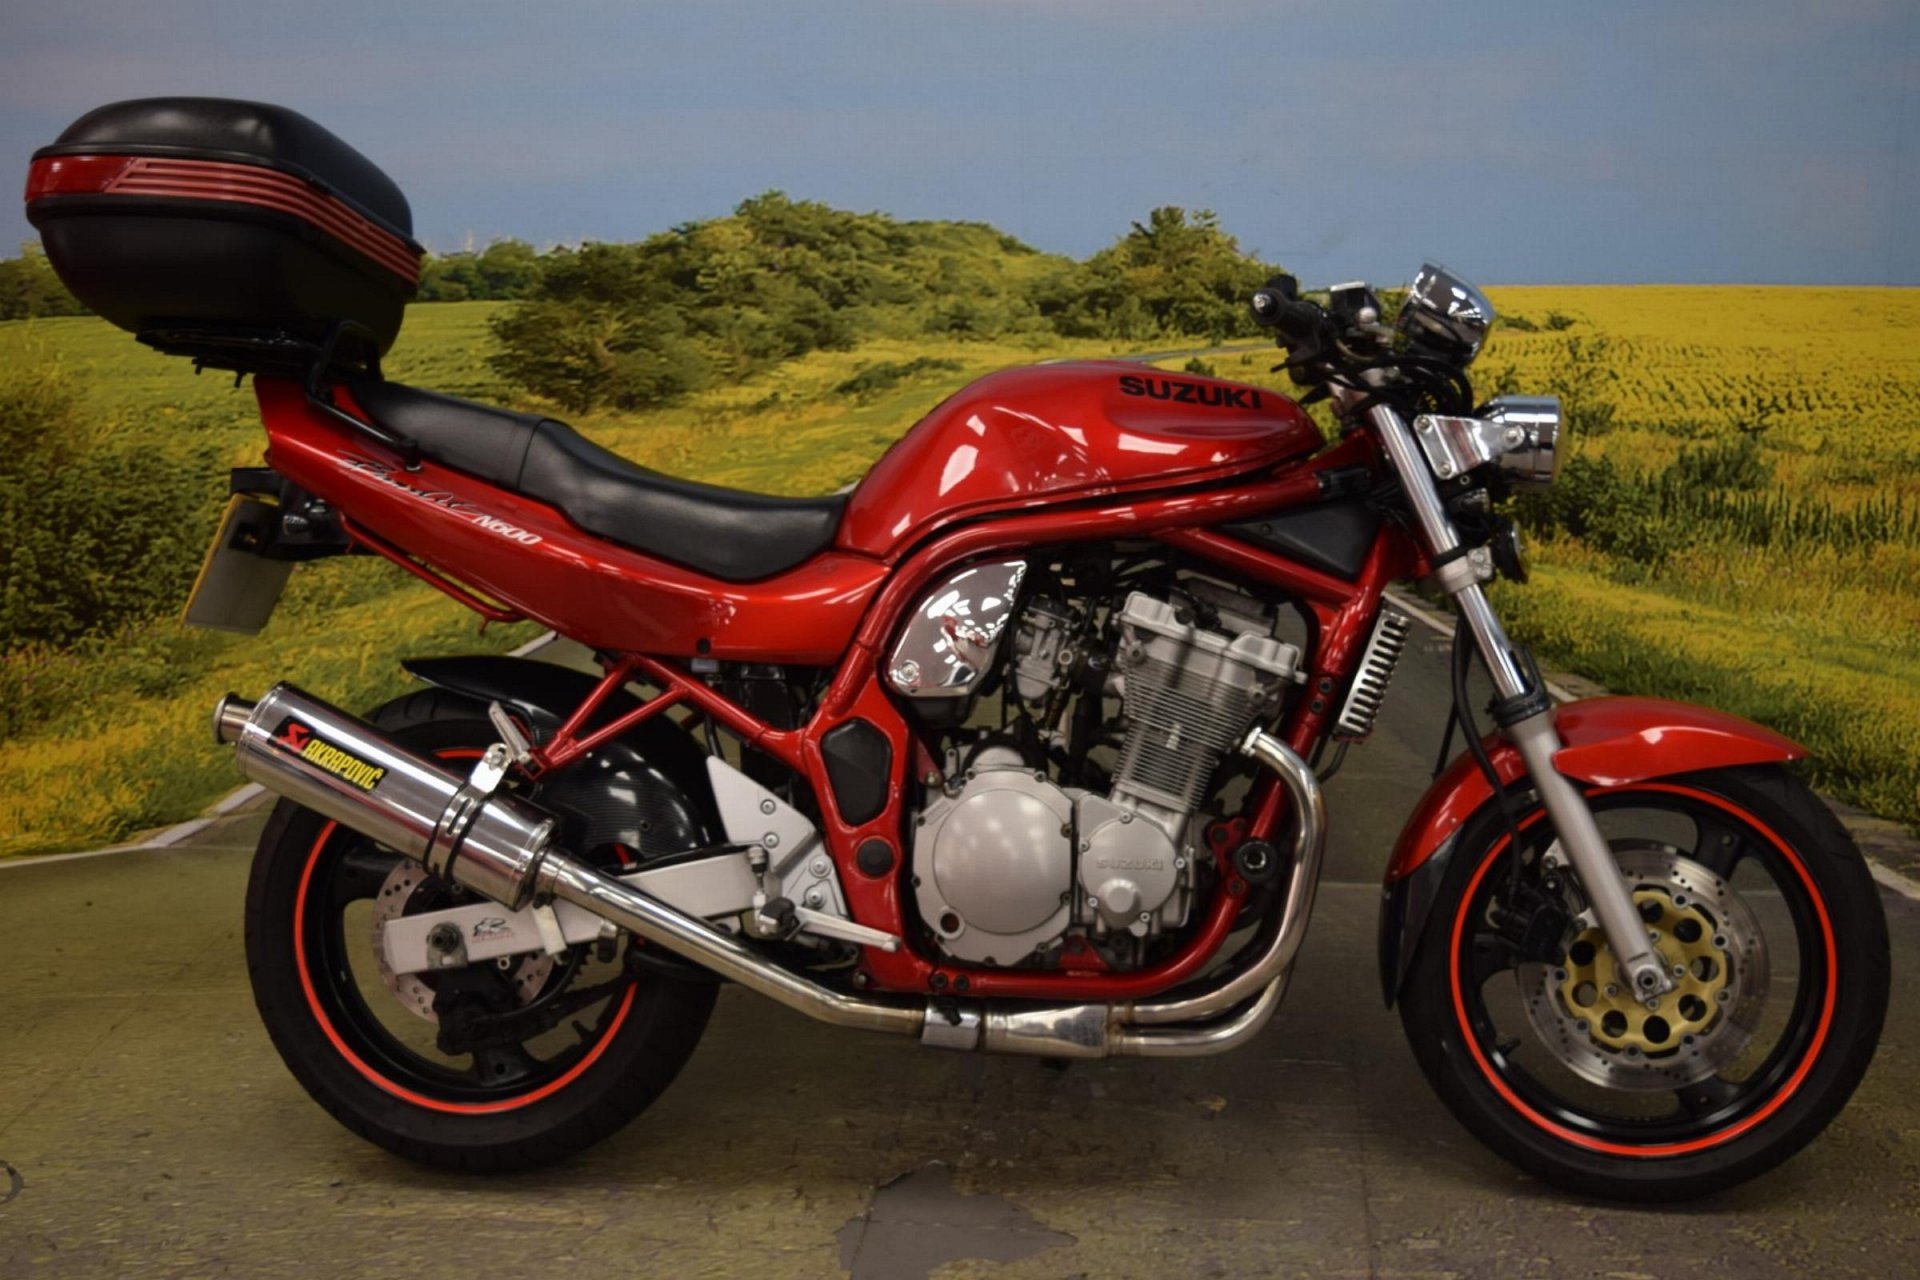 1999 Suzuki GSF 600 for sale in Staffordshire